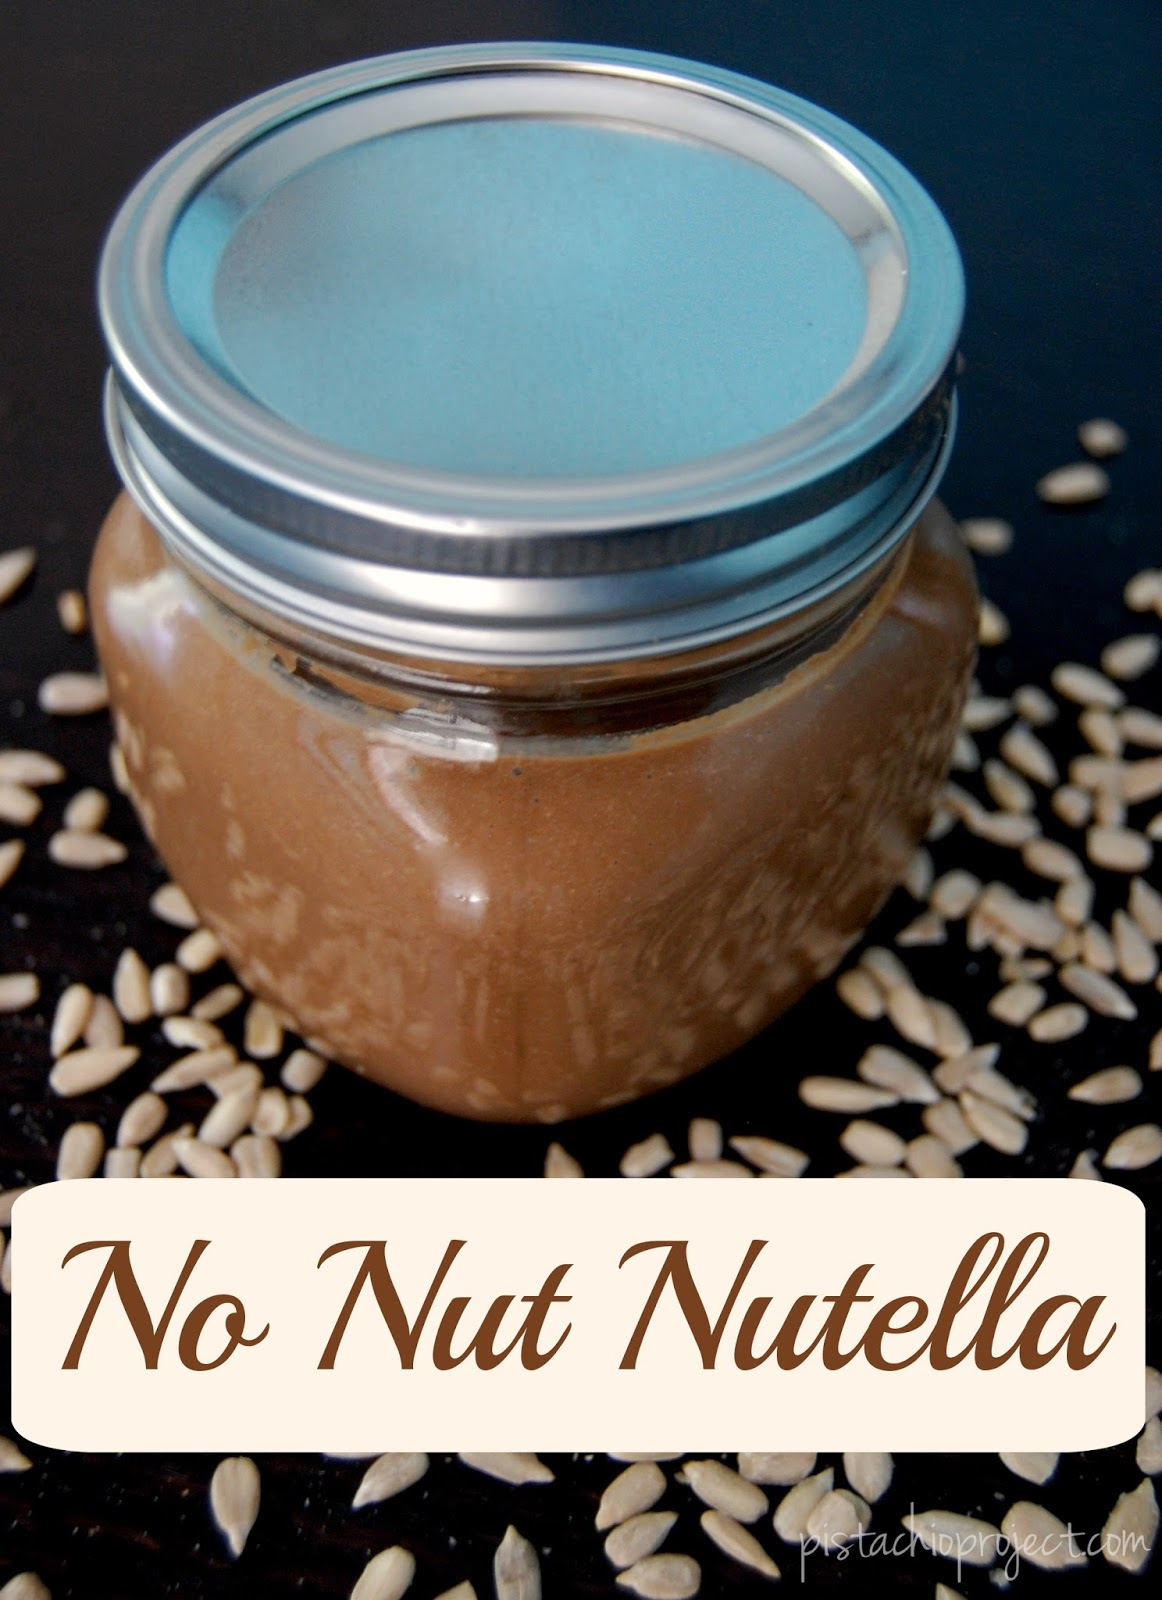 No Nut Nutella